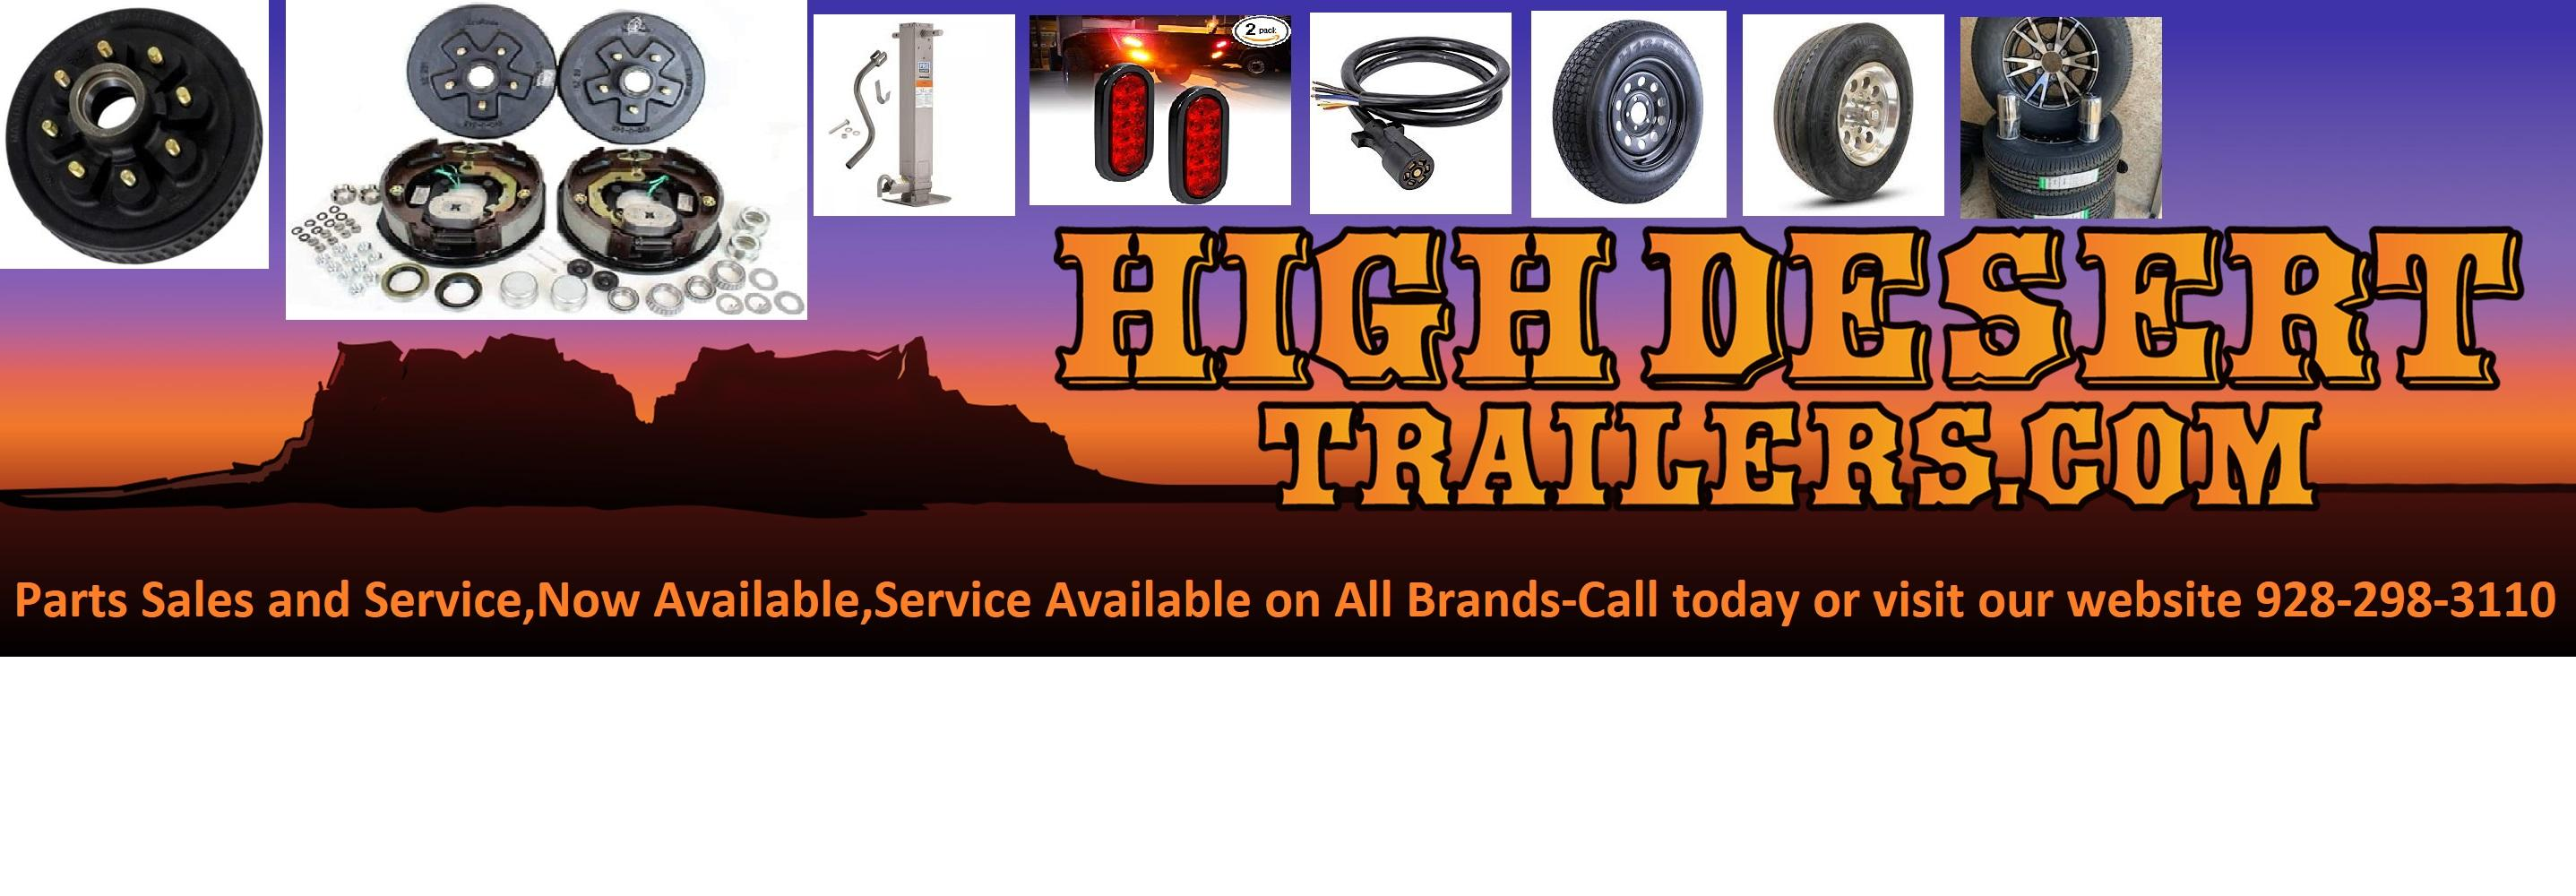 Trailer Parts and Service Now available